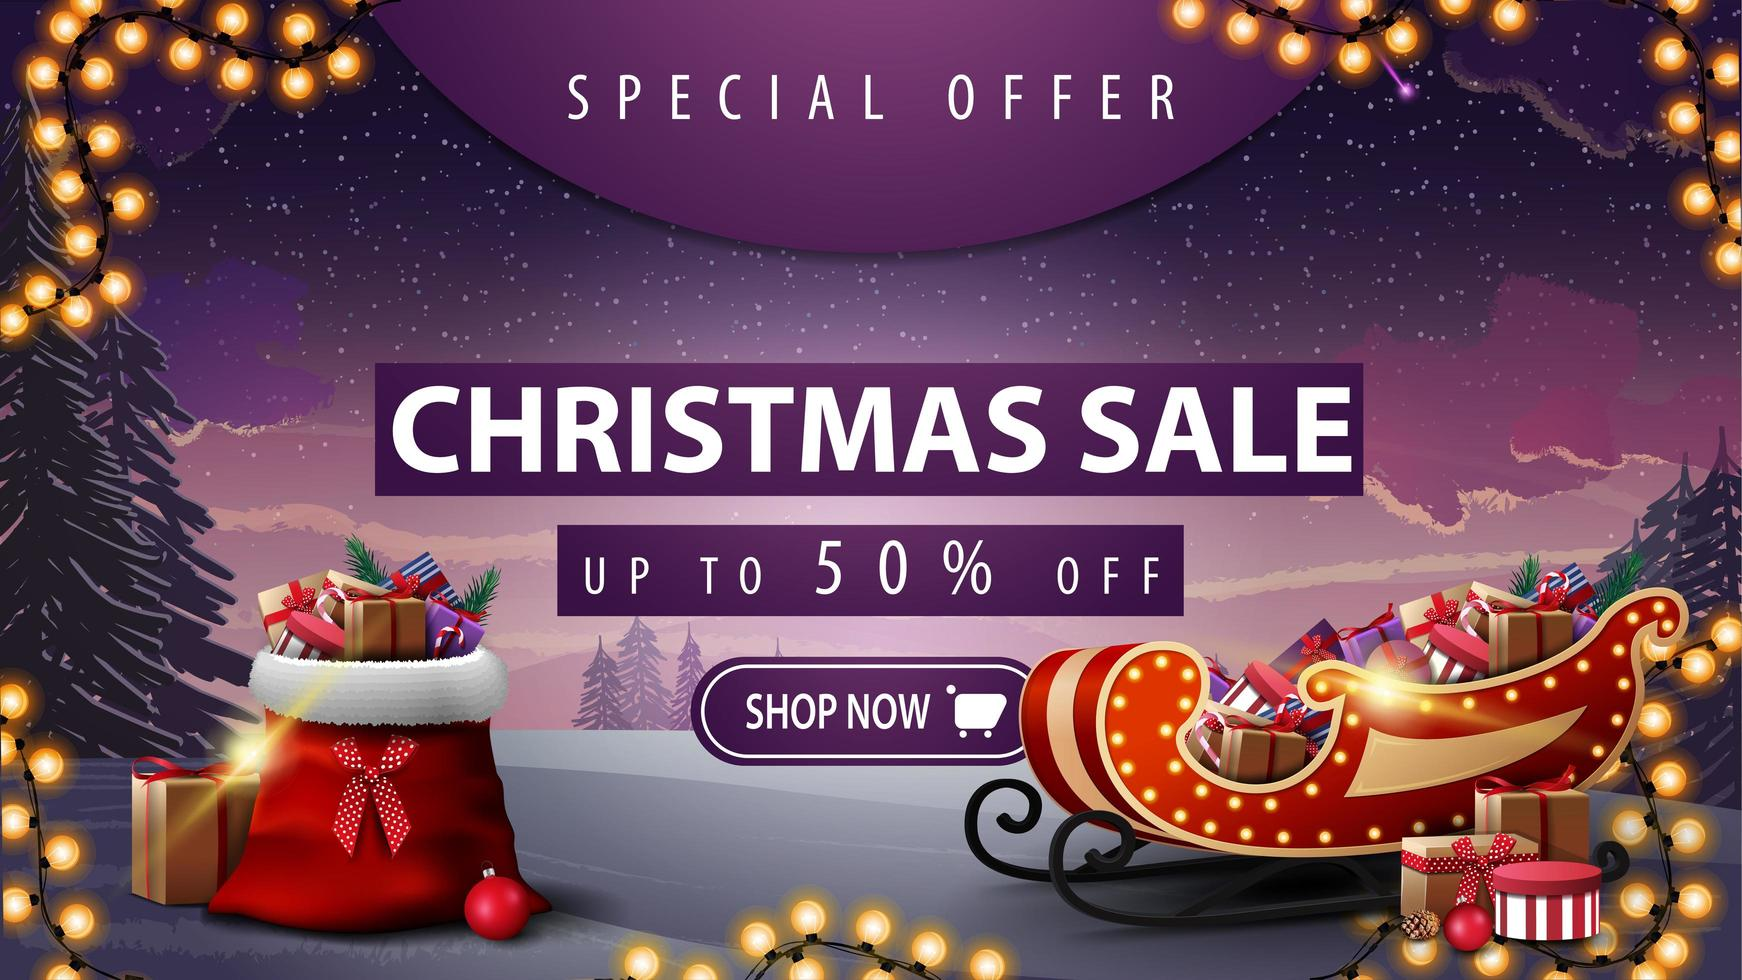 Special offer, Christmas sale, up to 50 off, beautiful discount banner with winter landscape, garland, button, Santa Claus bag and Santa Sleigh with presents vector